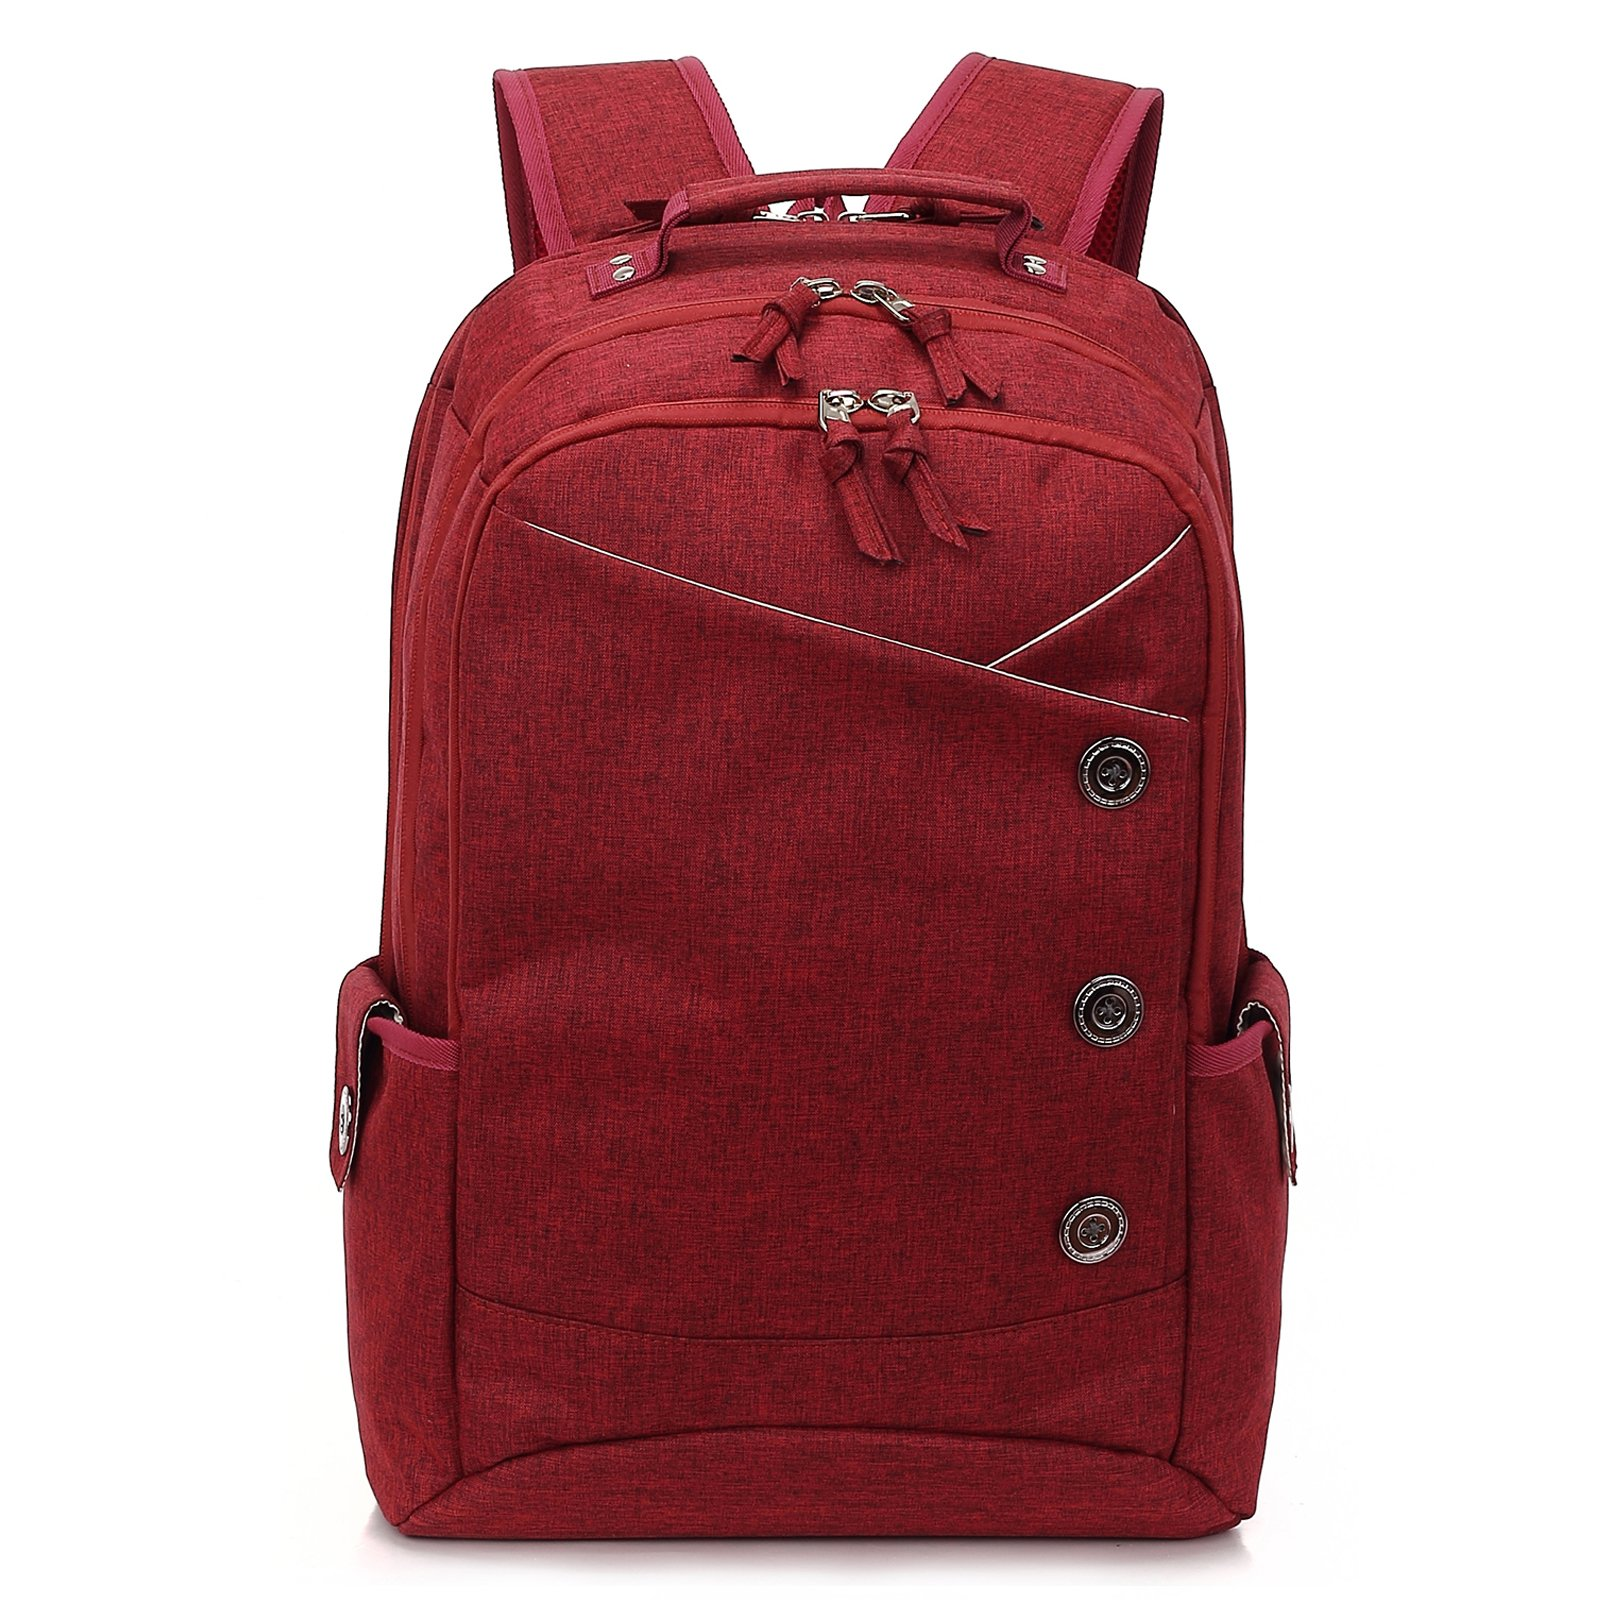 KINGSLONG Backpack Men Women, 15.6 inches Laptops Button Style Waterproof Shockproof Large Capacity School Bag to Travel Business Work Daypack Shopping(red)